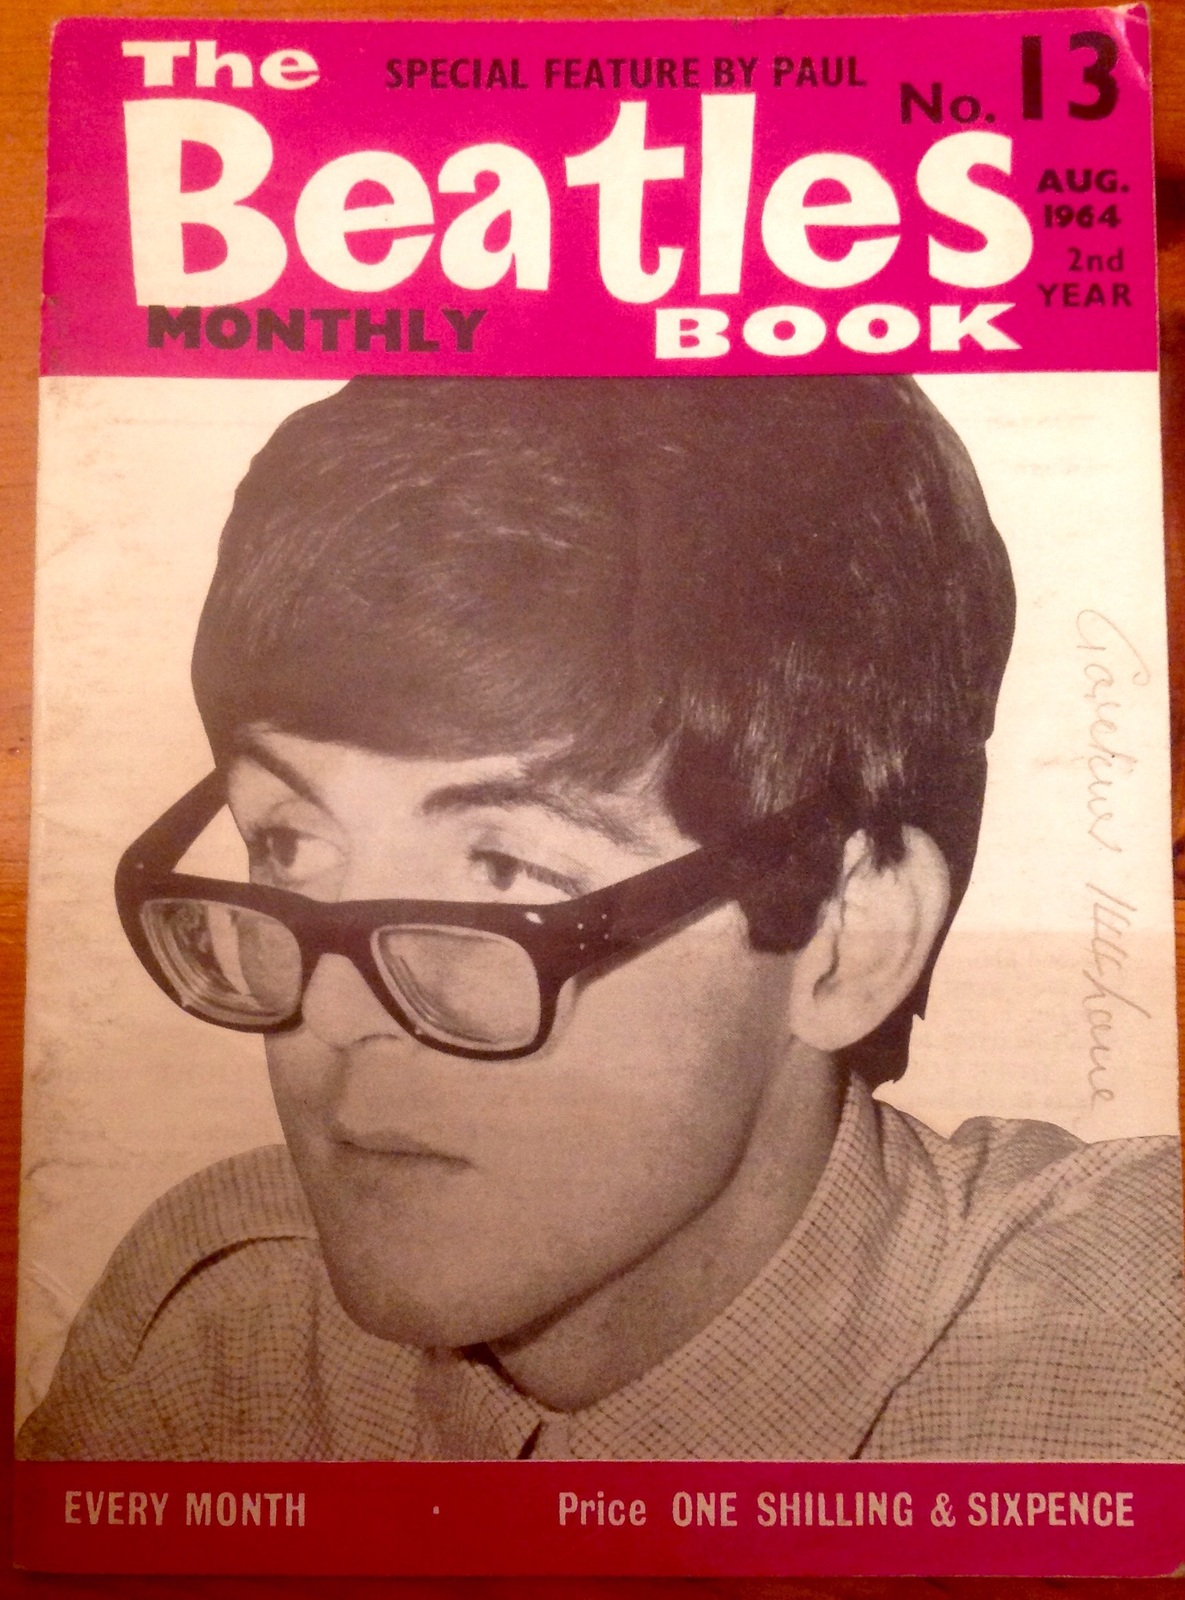 The Beatles Monthly Book Magazine No 13 August 1964 Vintagel